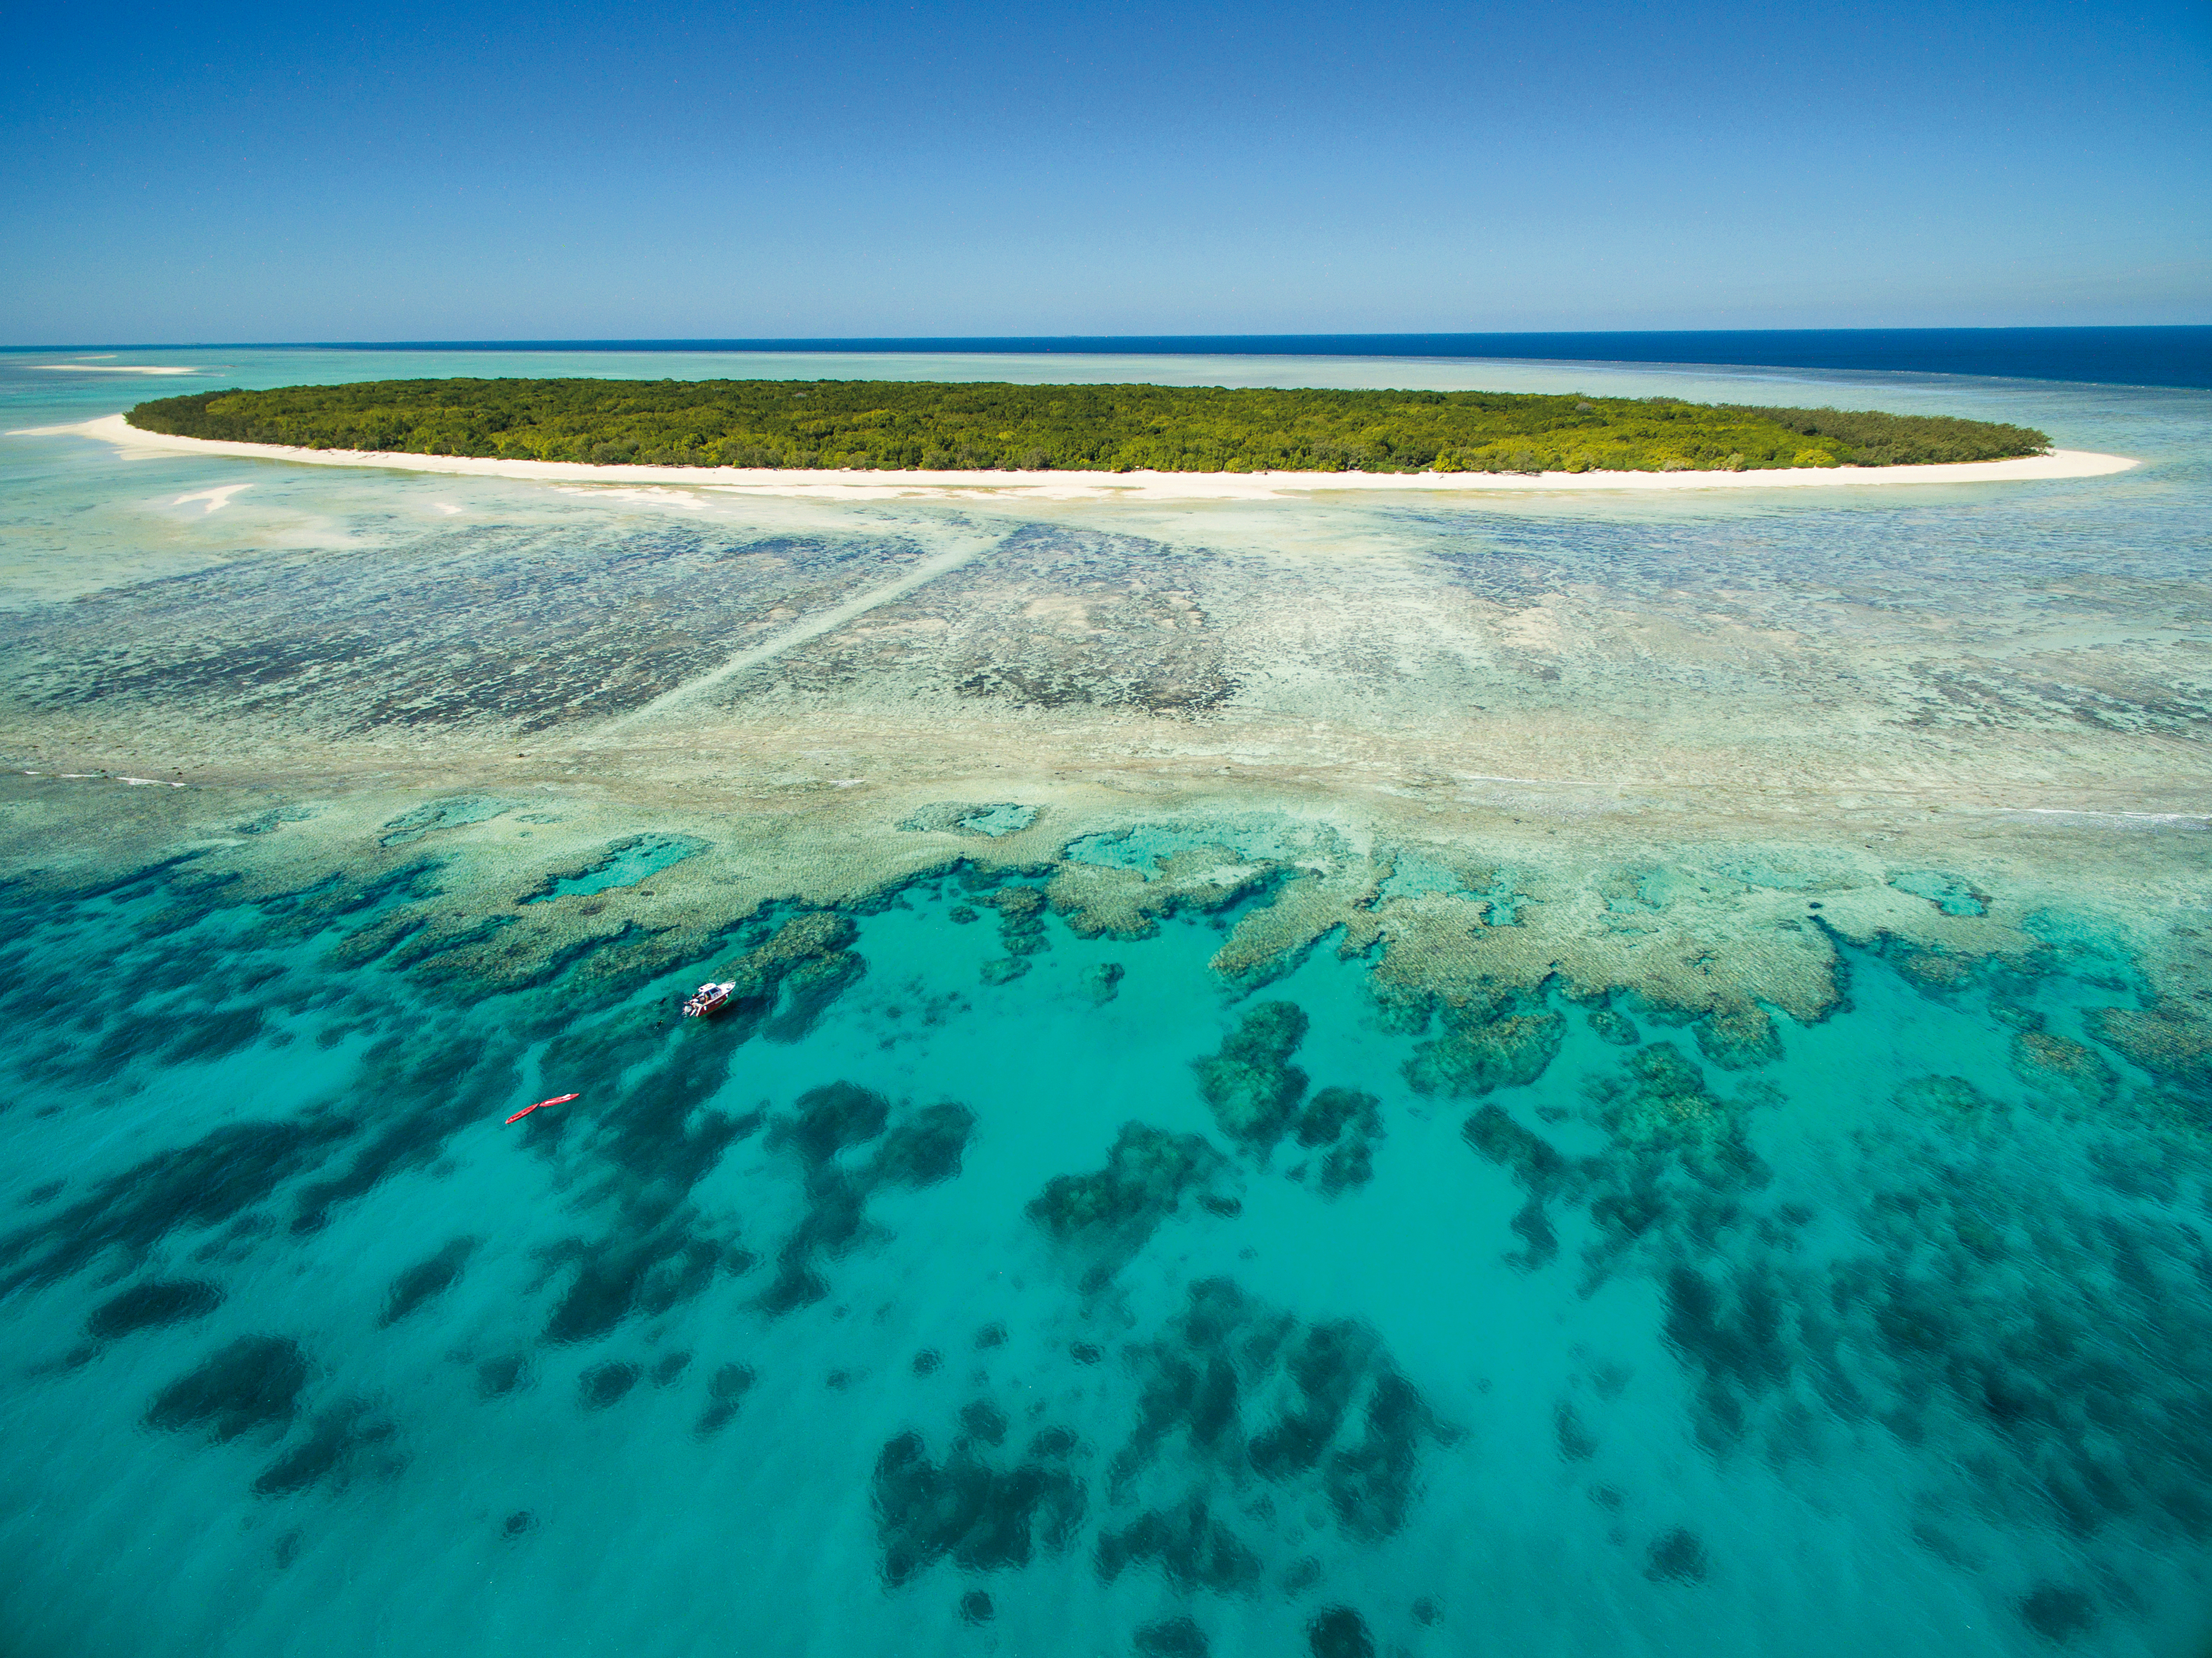 Rustic Island off the southern coast of Australia's Great Barrier Reef